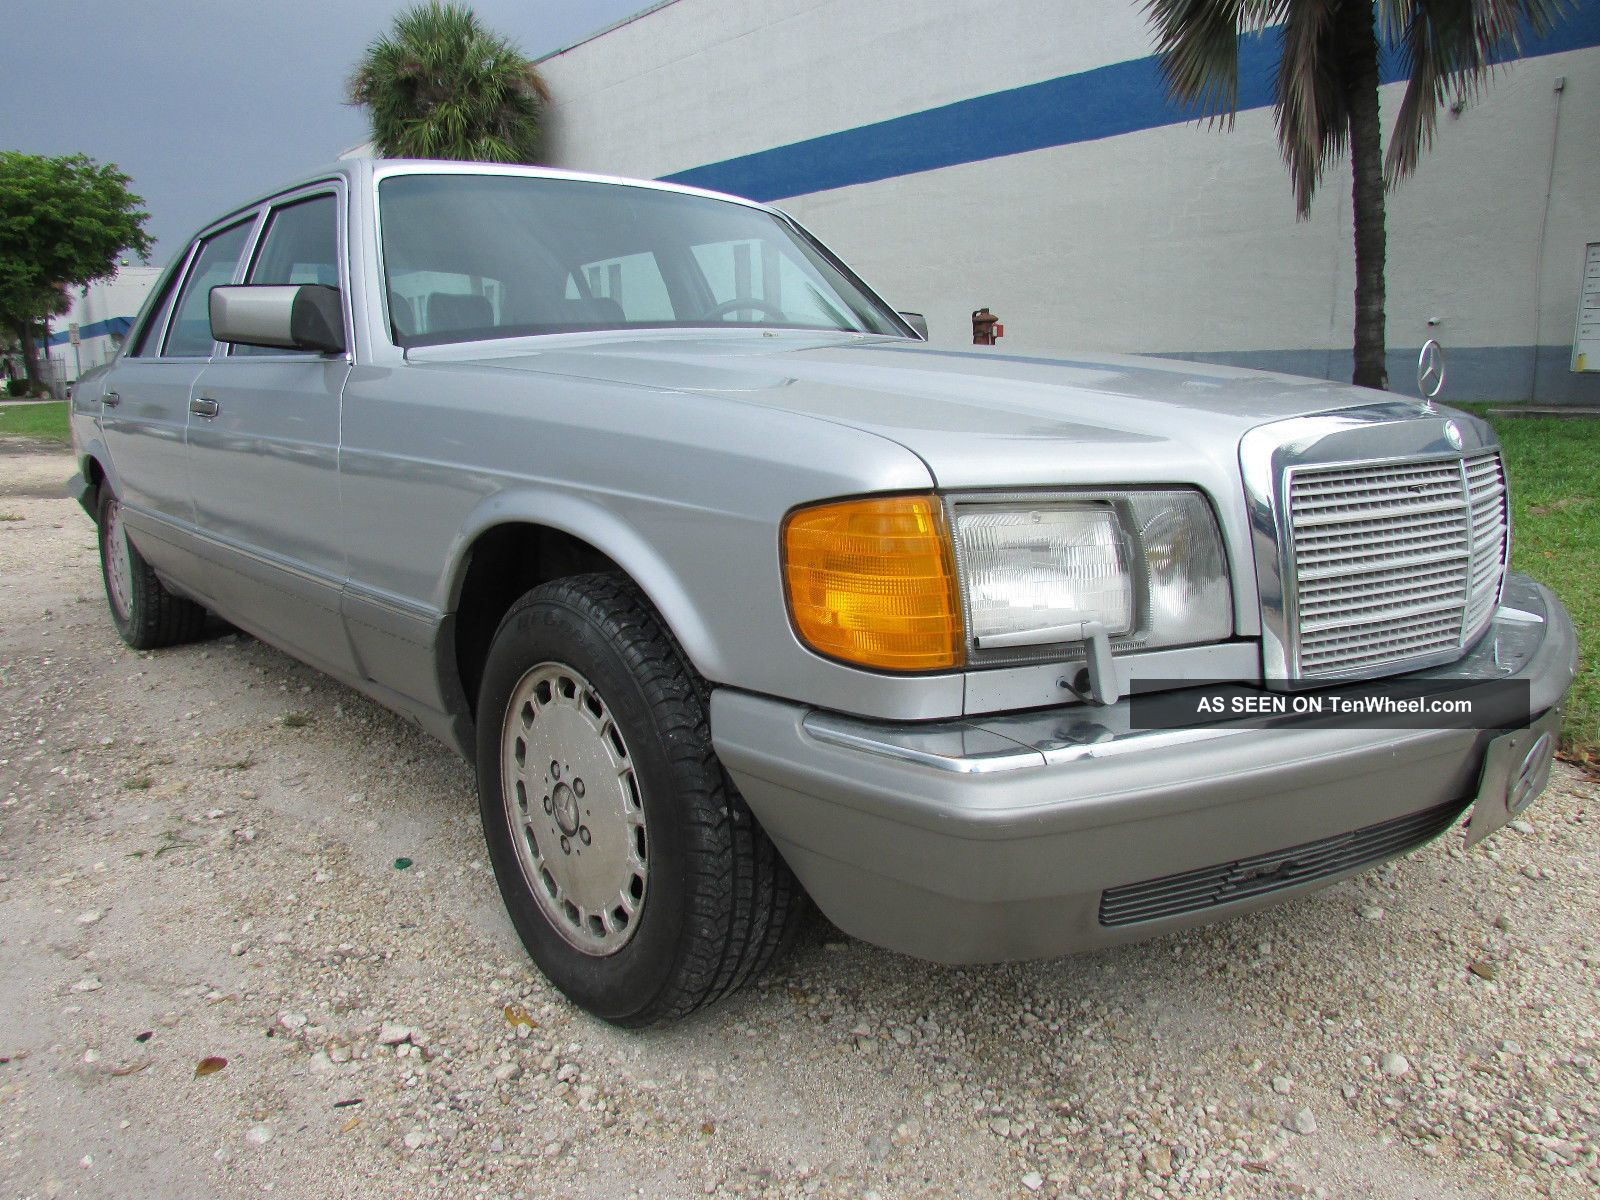 1986 mercedes benz 300 sdl turbo diesel silver title for Mercedes benz 300 diesel